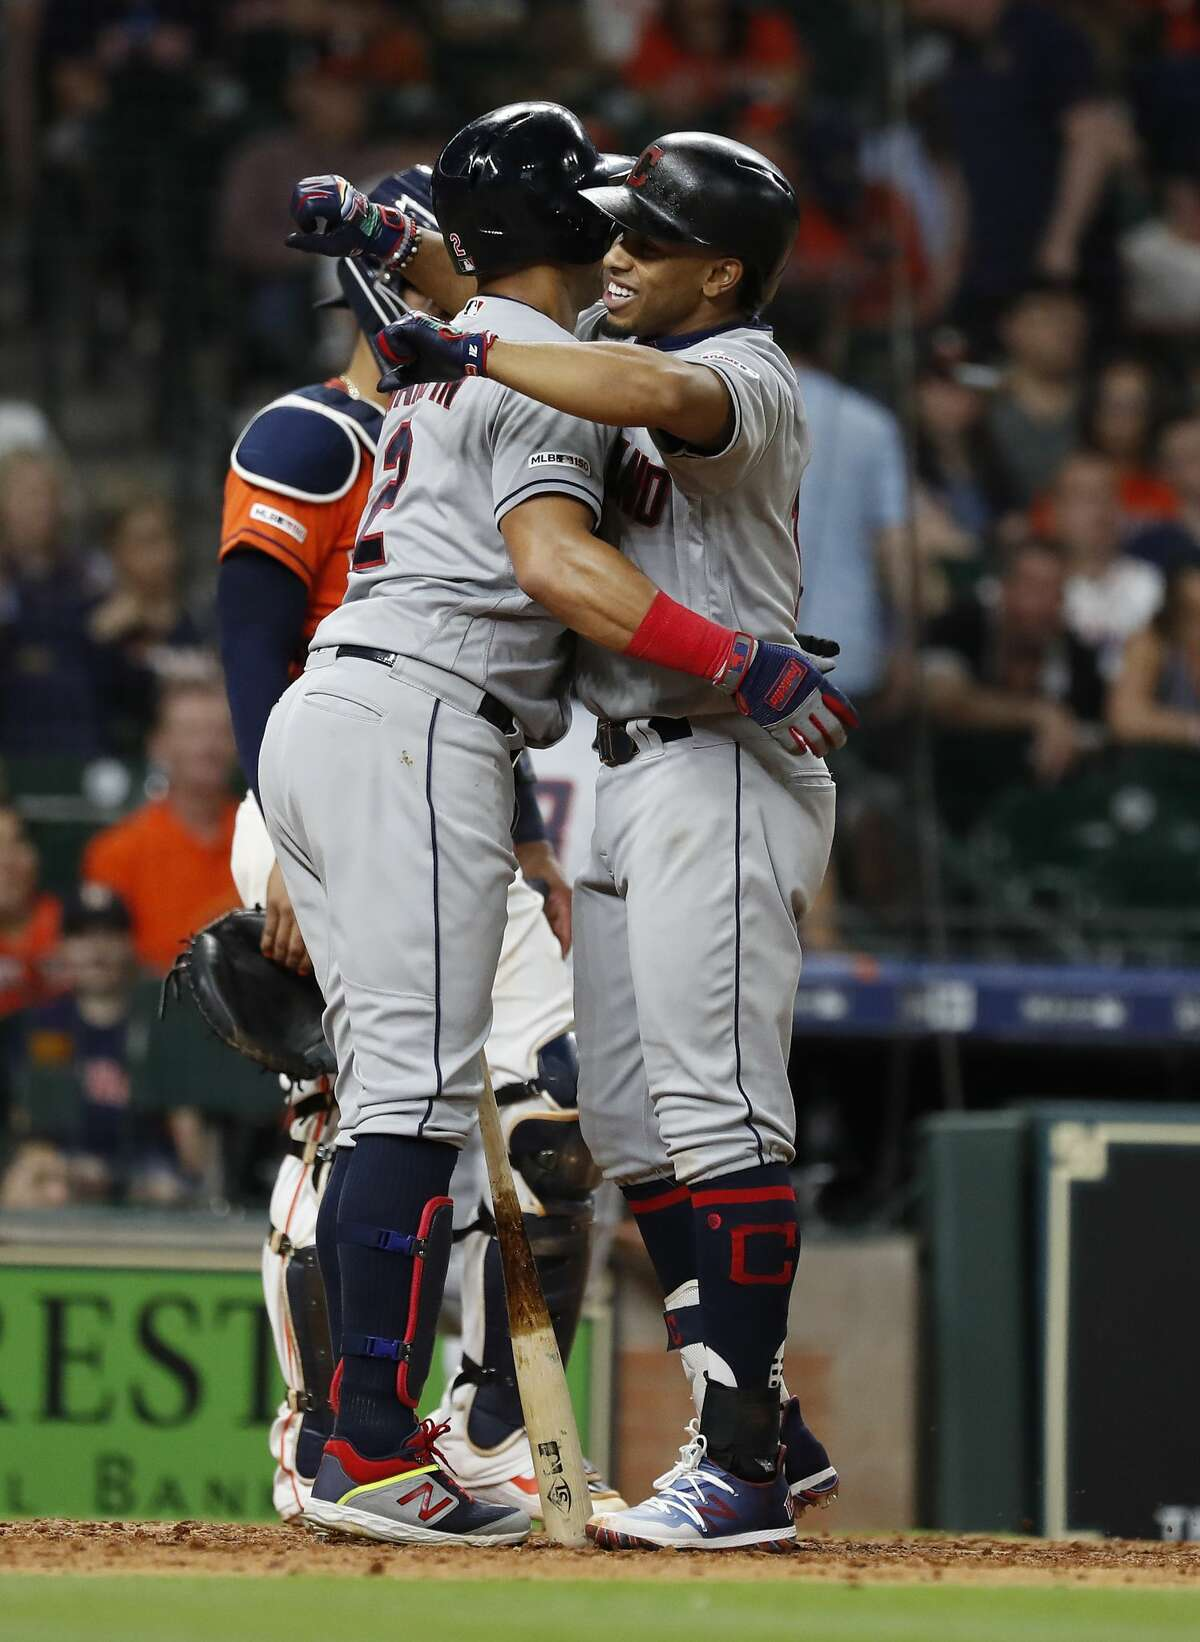 Cleveland Indians Francisco Lindor (12) hugs Leonys Martin (2) after Lindor's second home run of the night during the ninth inning of an MLB baseball game at Minute Maid Park, in Houston, Friday, April 26, 2019.